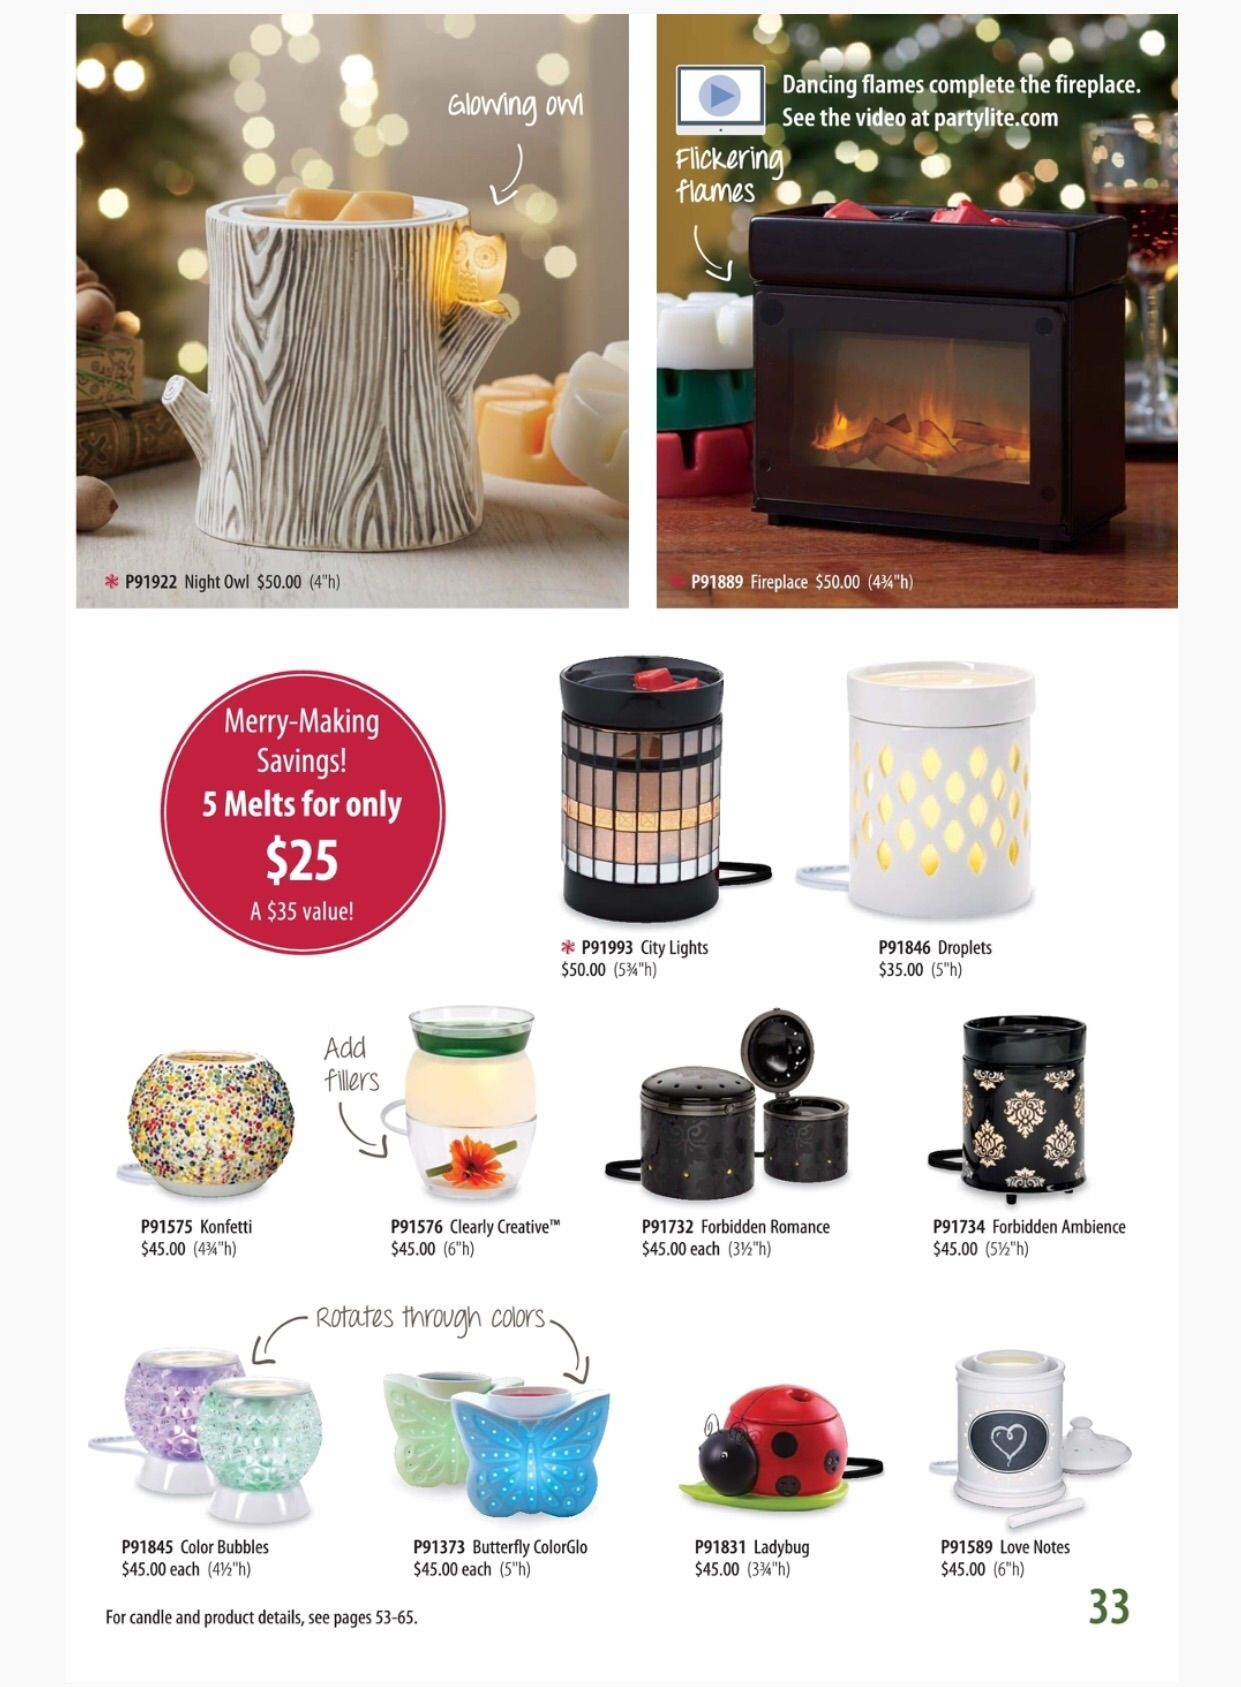 Partylite Fall Holiday 2015 Catalog Scentglow Warmers